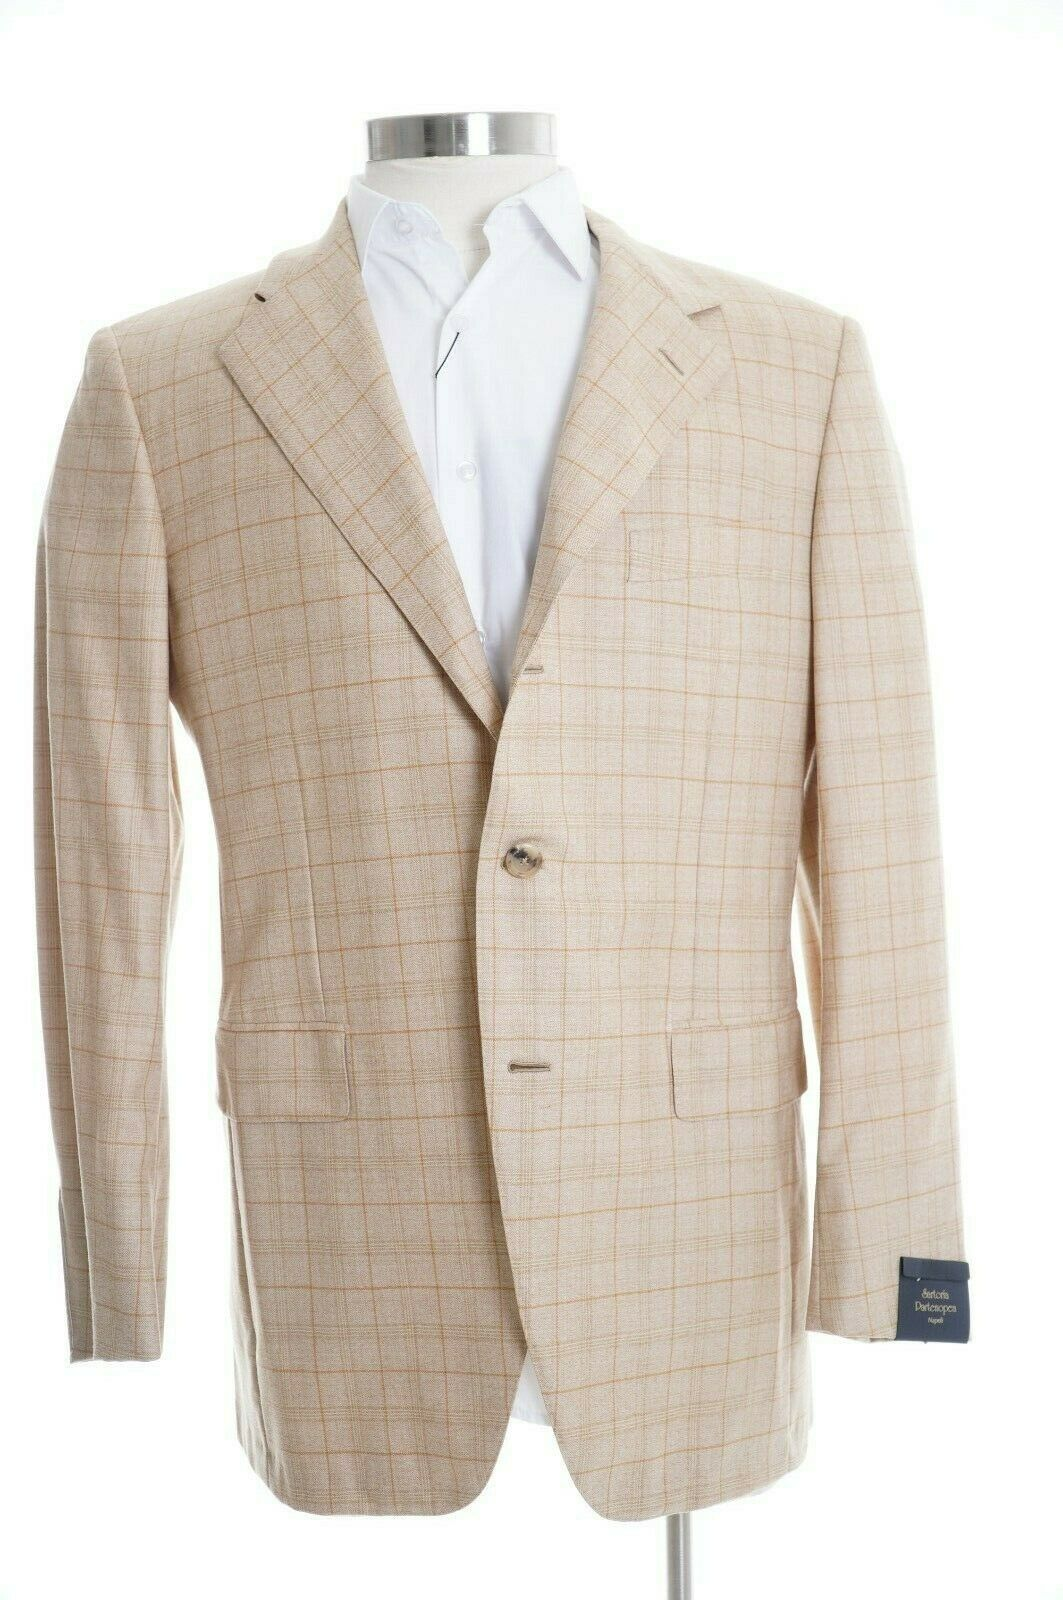 K Sartoria Partenopea  42R 100% Wool golden Brown Plaid Canvassed Blazer